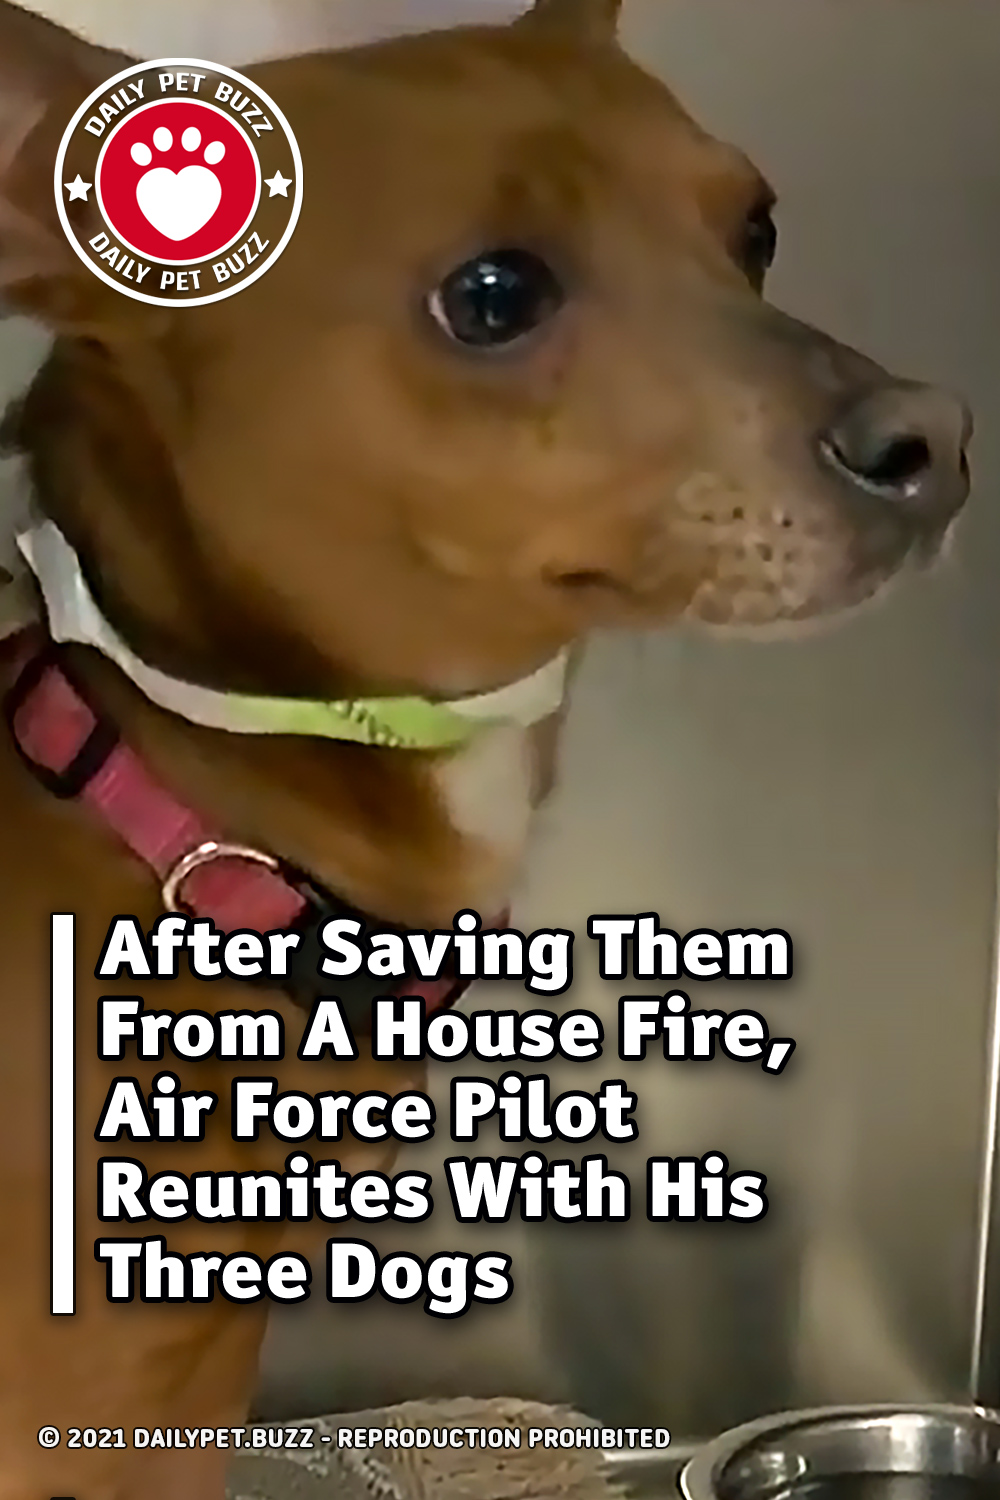 After Saving Them From A House Fire, Air Force Pilot Reunites With His Three Dogs